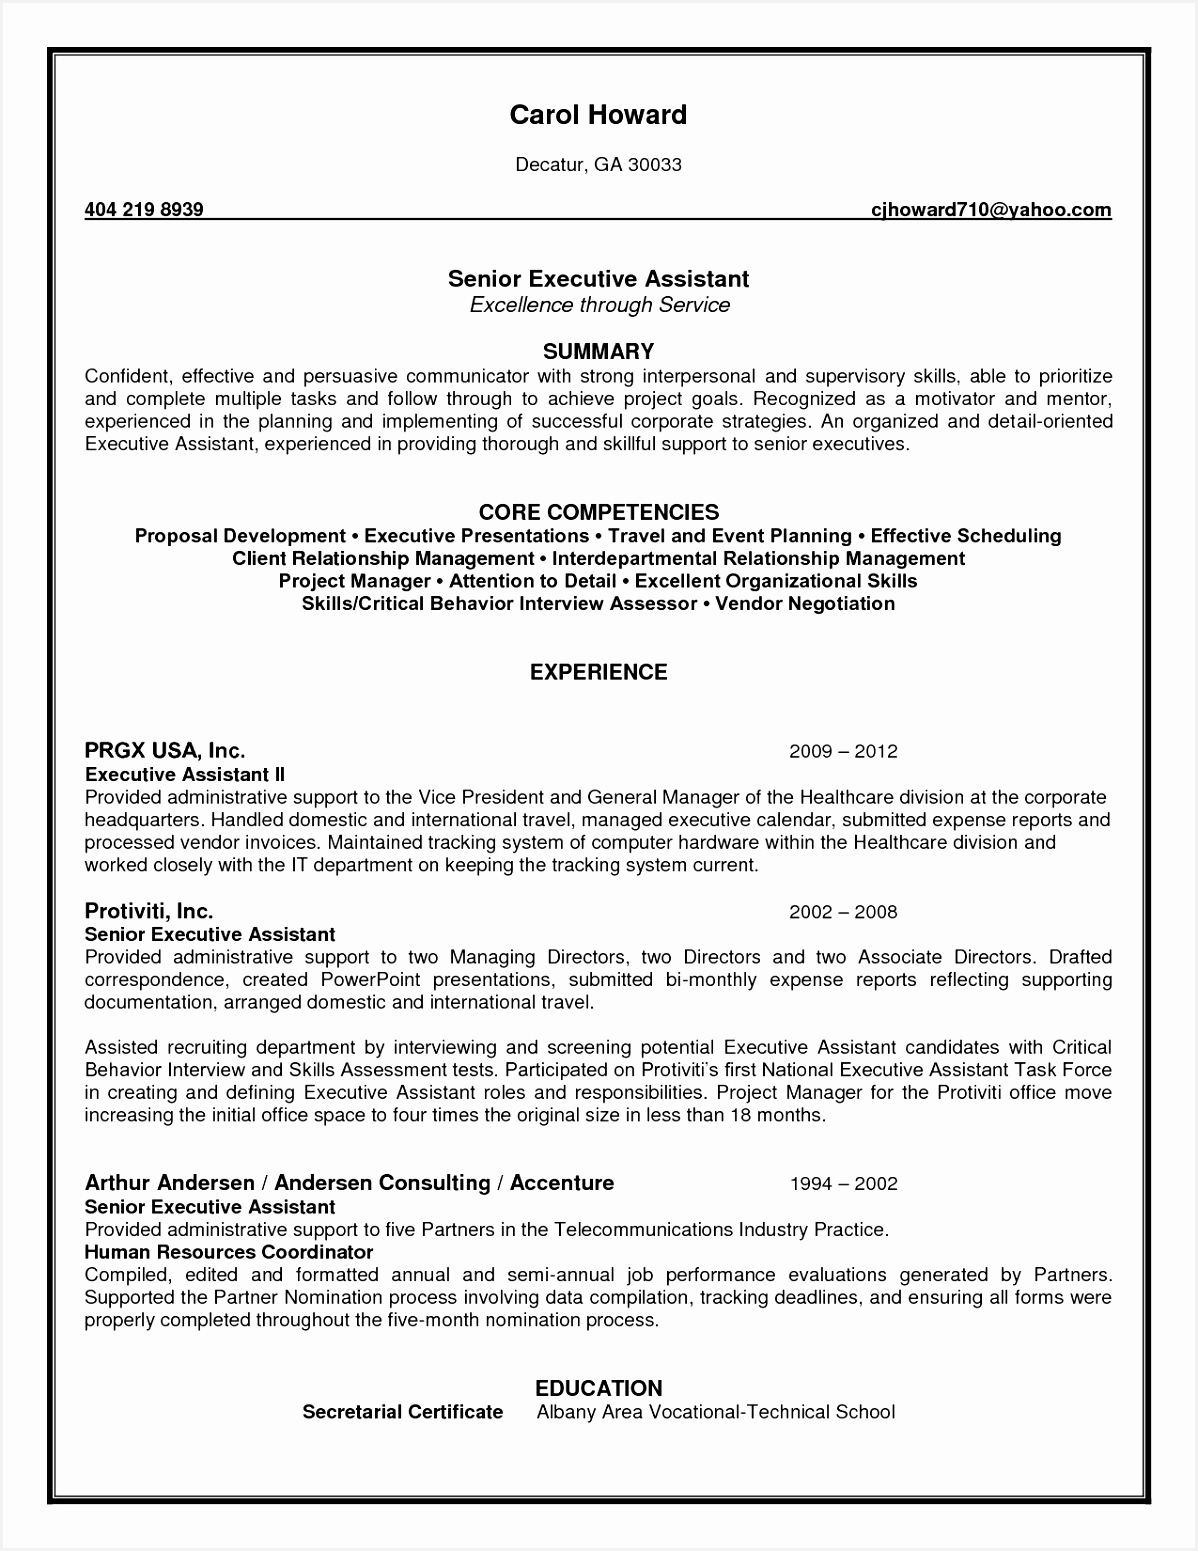 Admin assistant Resume Lovely Resume Template Executive assistant Beautiful Ssis Resume 0d Admin assistant Resume 15511198qjski